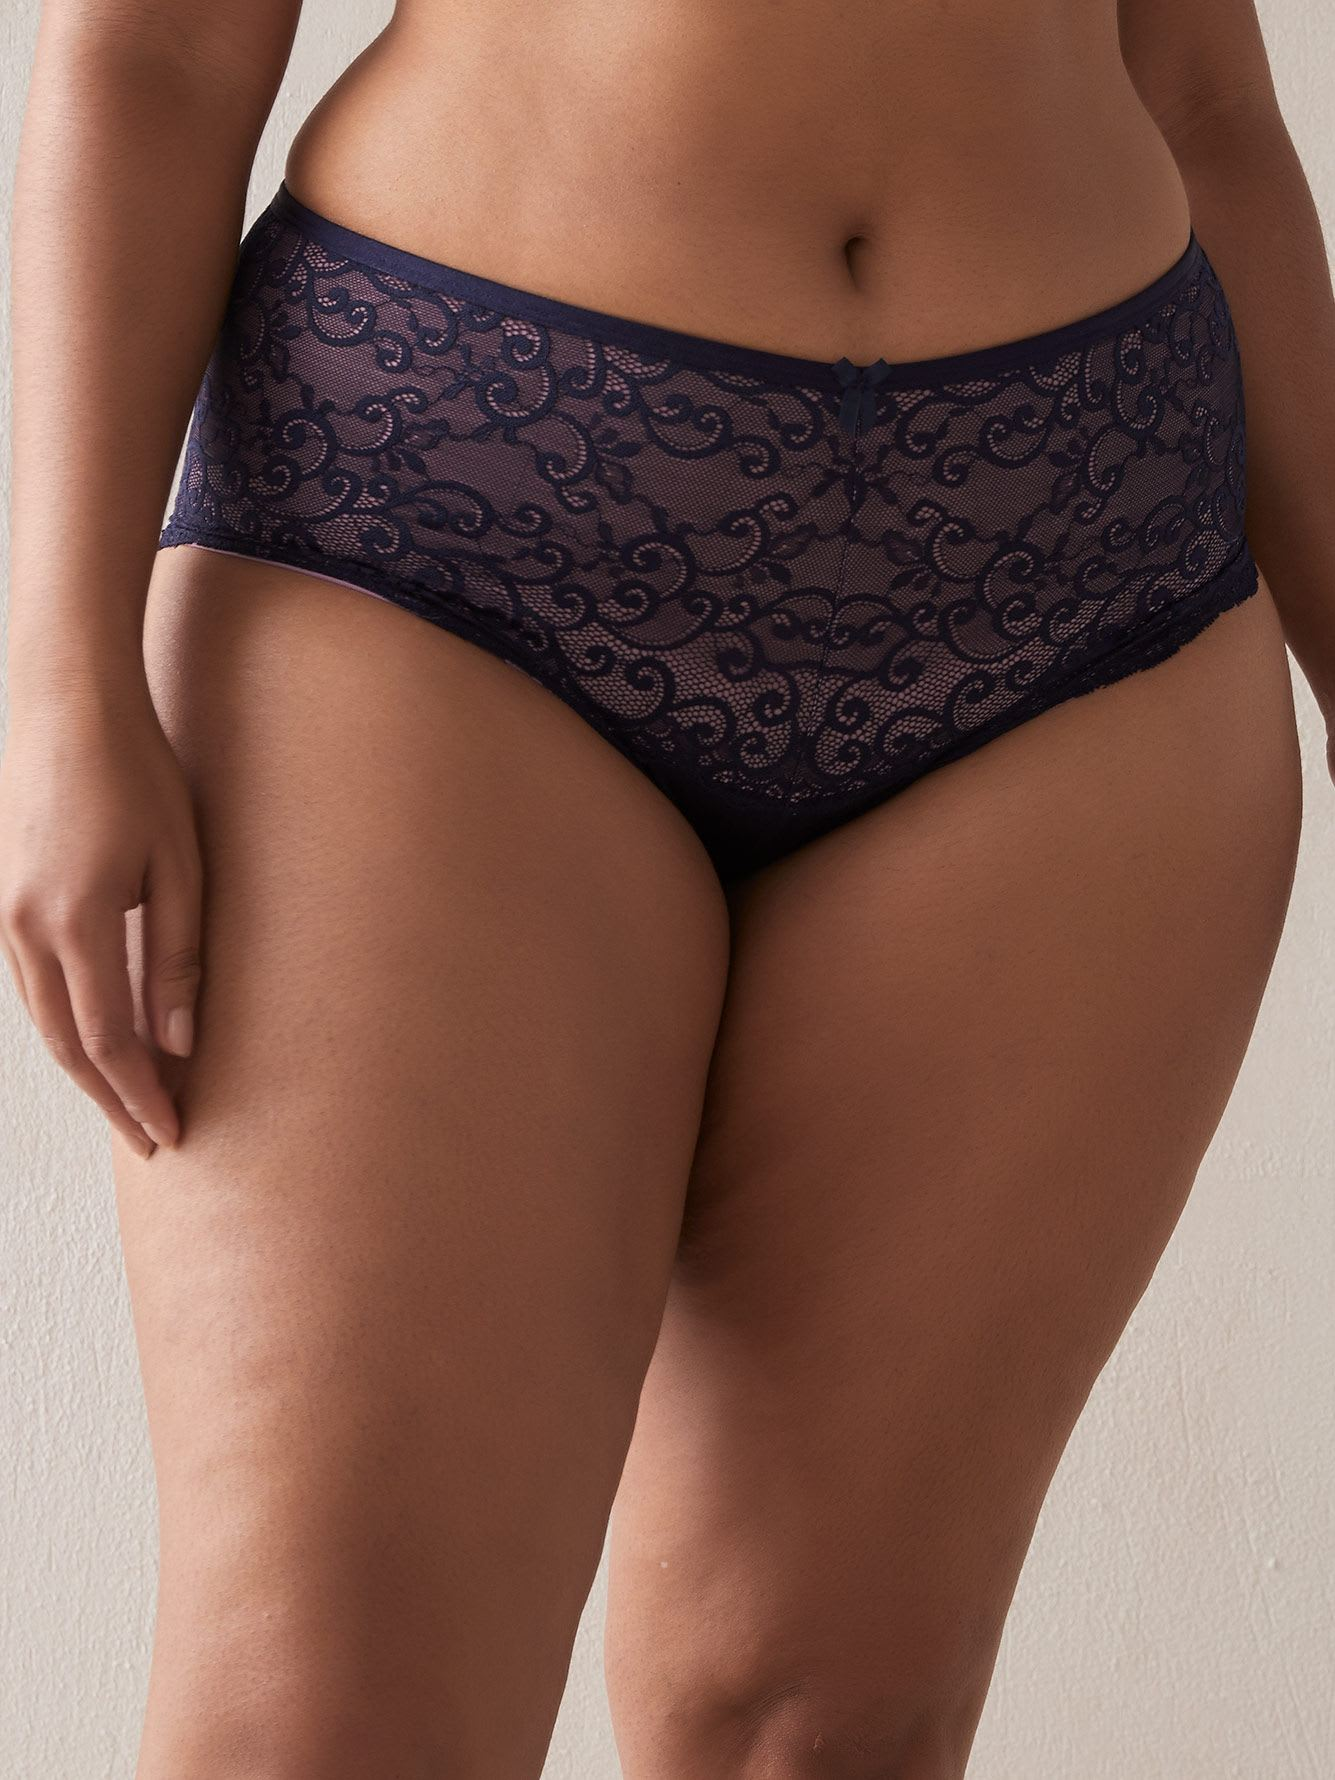 Femme Couture Full Brief Panty